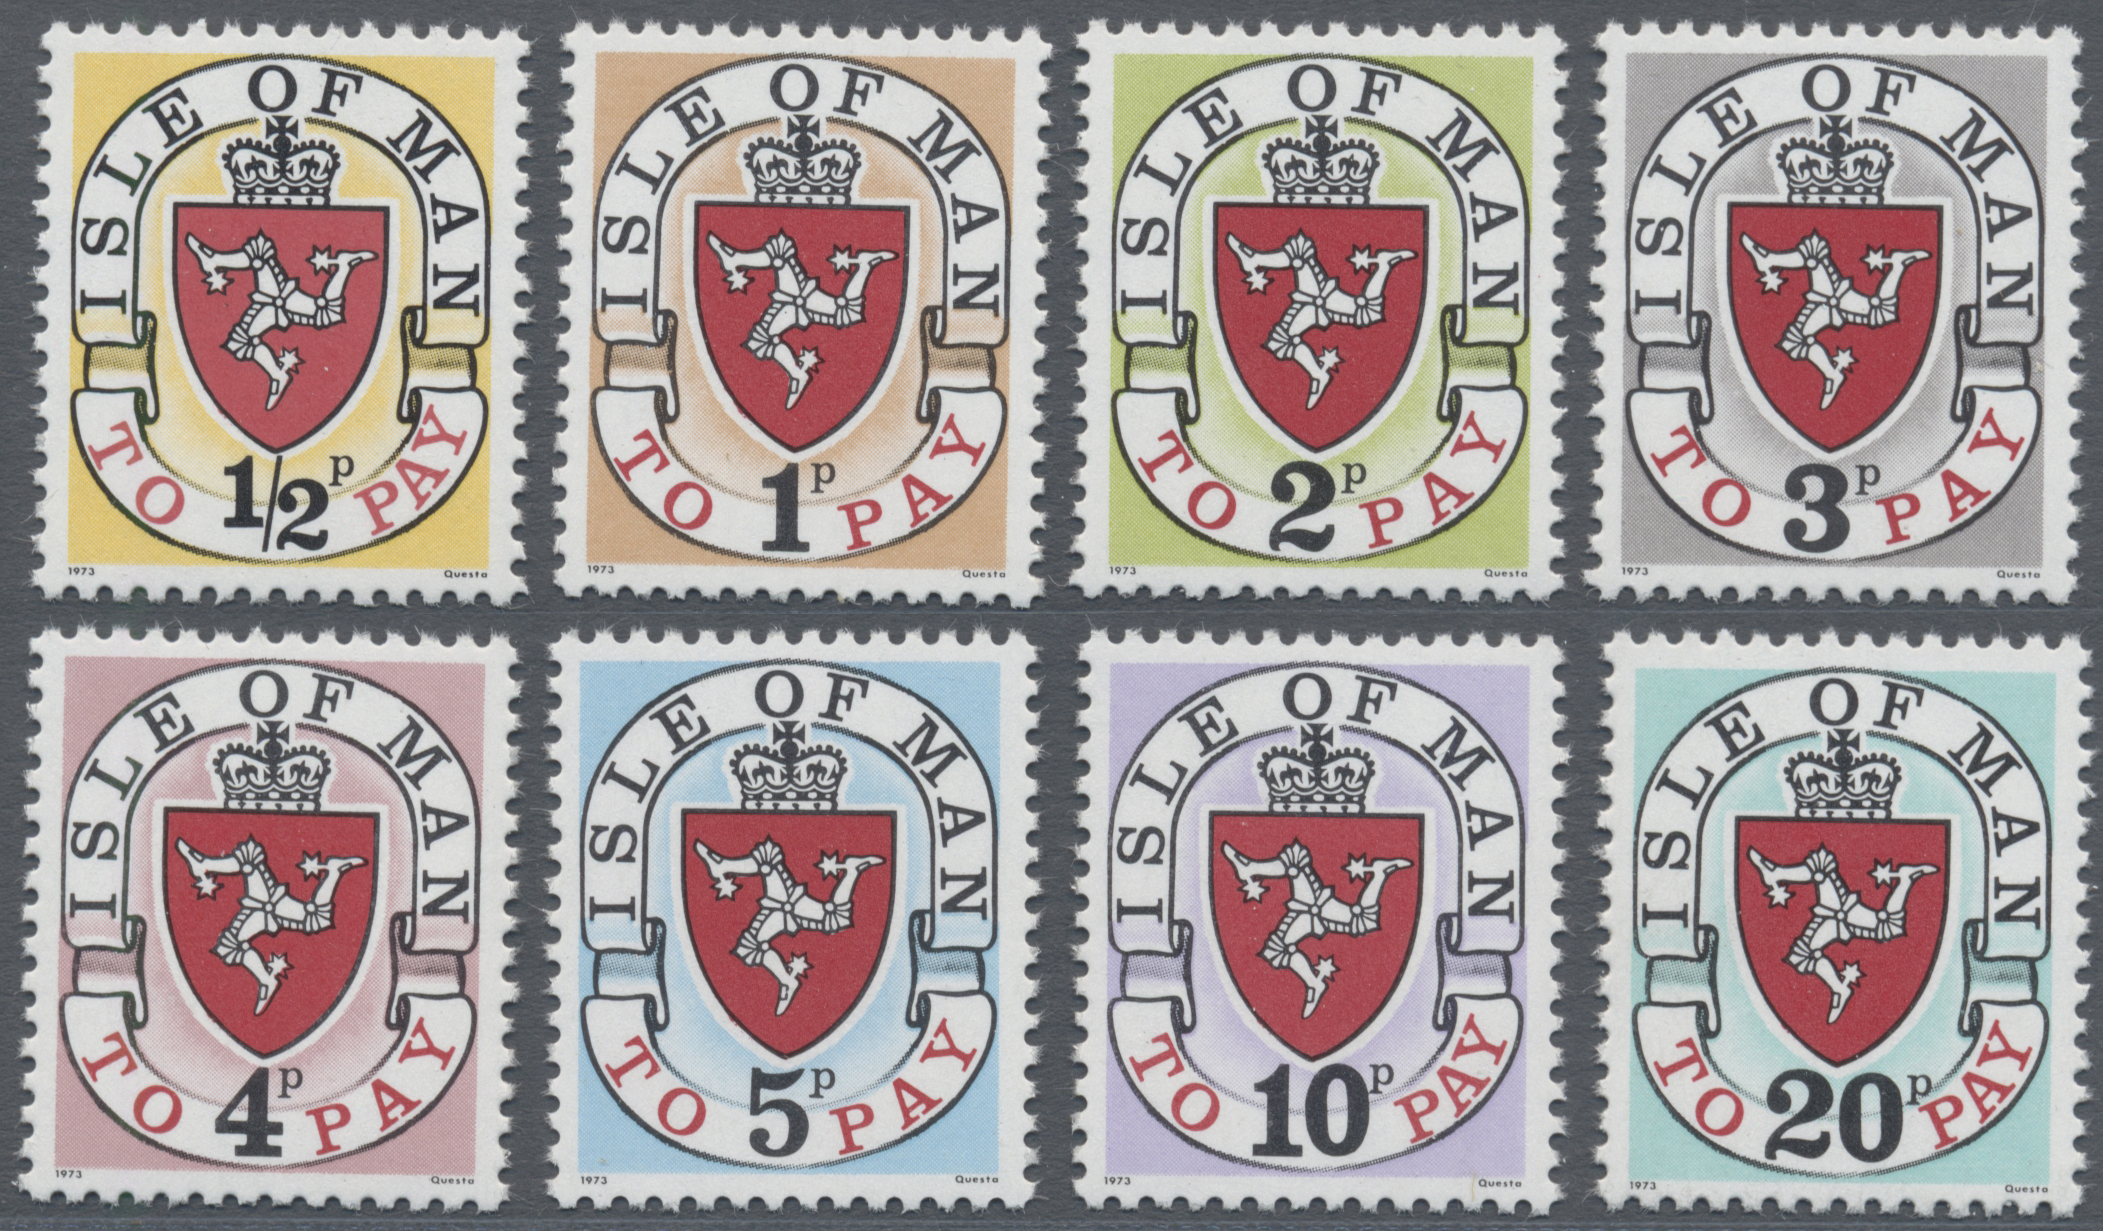 Lot 17125 - Großbritannien - Isle of Man - Portomarken  -  Auktionshaus Christoph Gärtner GmbH & Co. KG Sale #48 collections Overseas  Airmail / Ship mail & Thematics